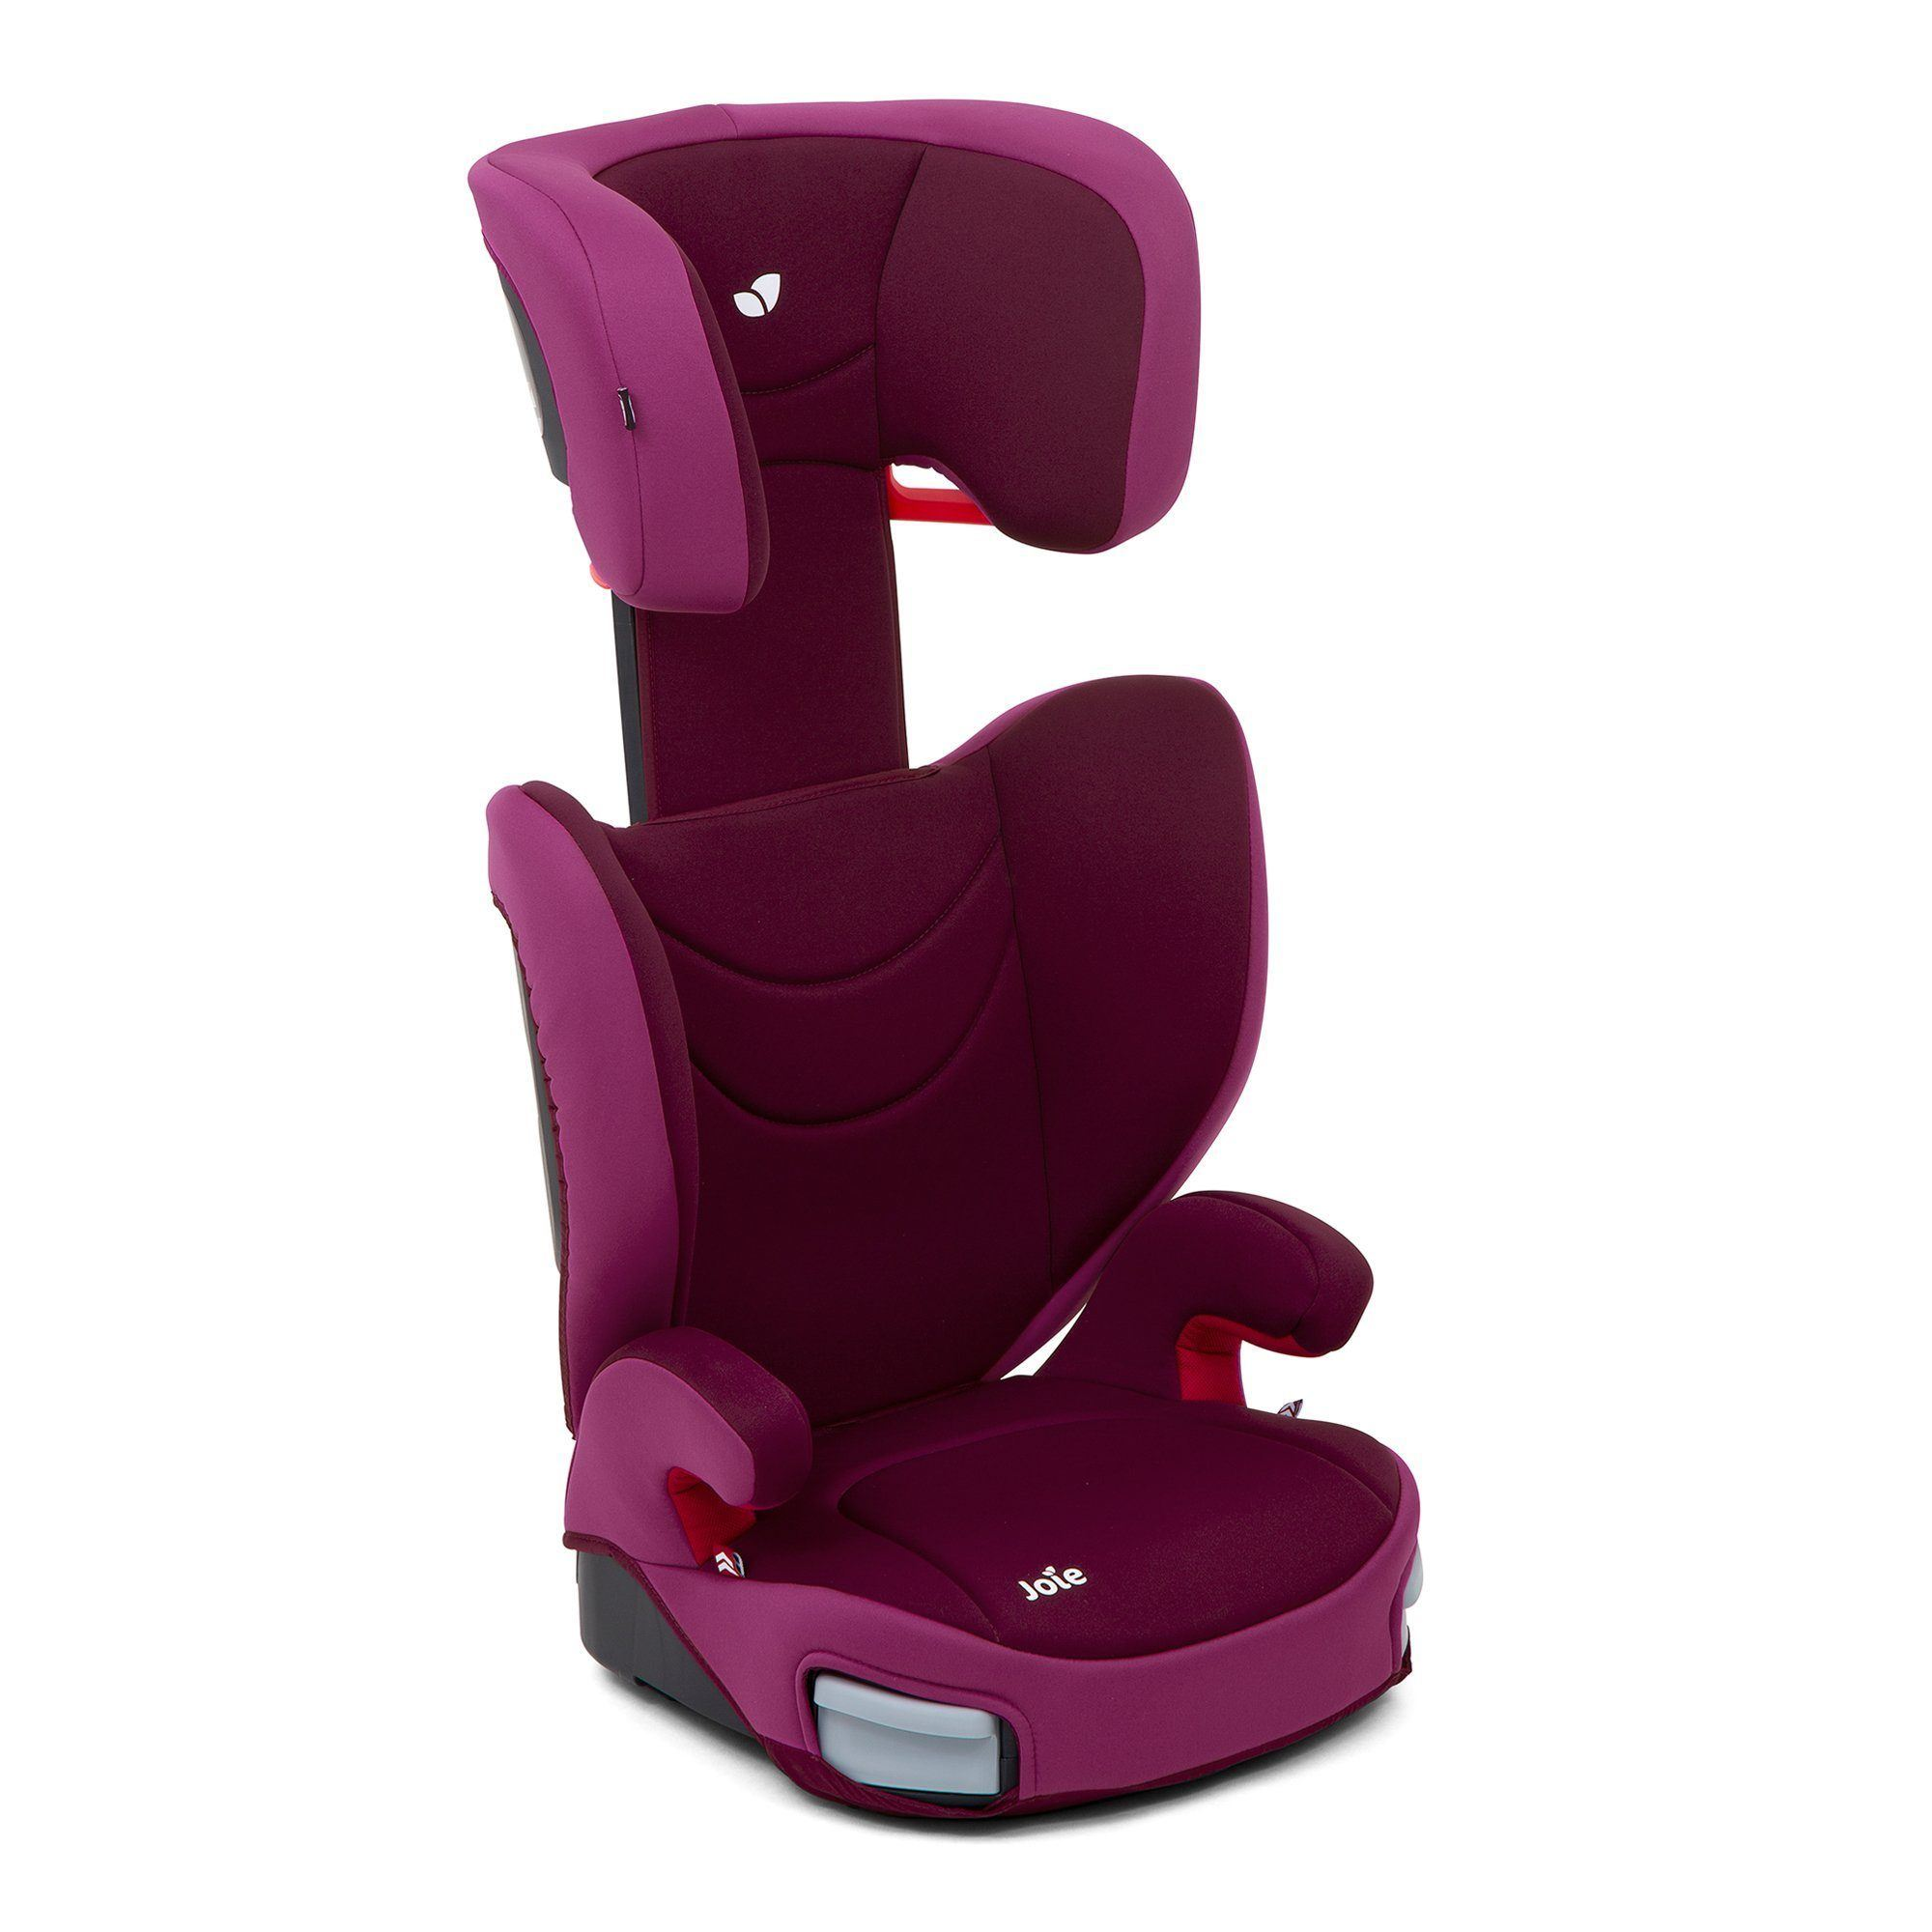 Joie Trillo high-back booster - Dahlia - Pushchair Expert